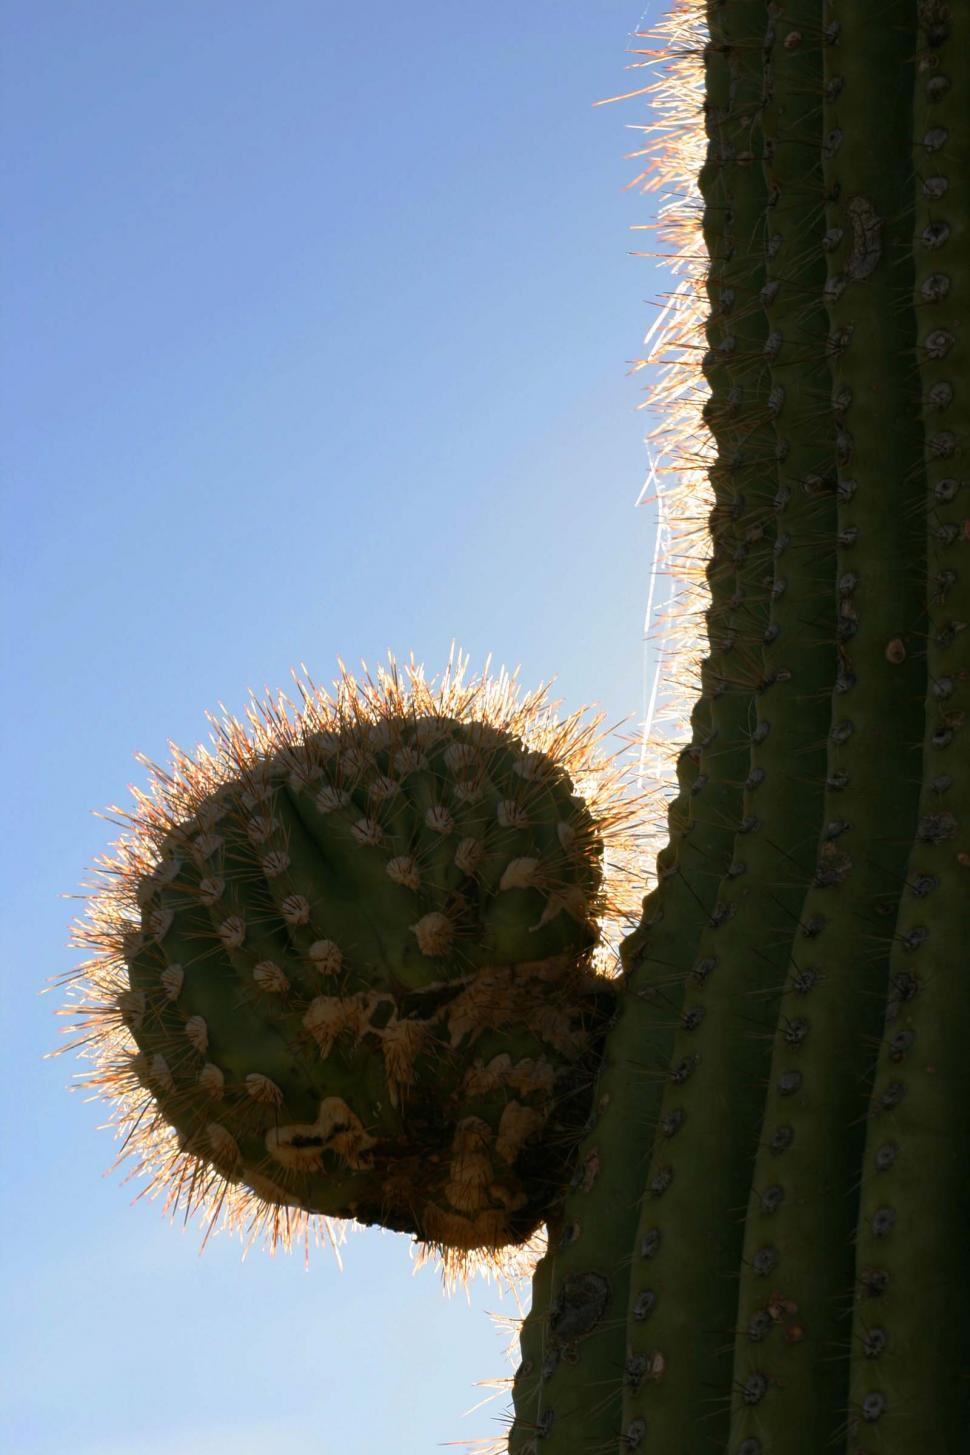 Free stock photo of Small arm growing from side of saguaro cactus